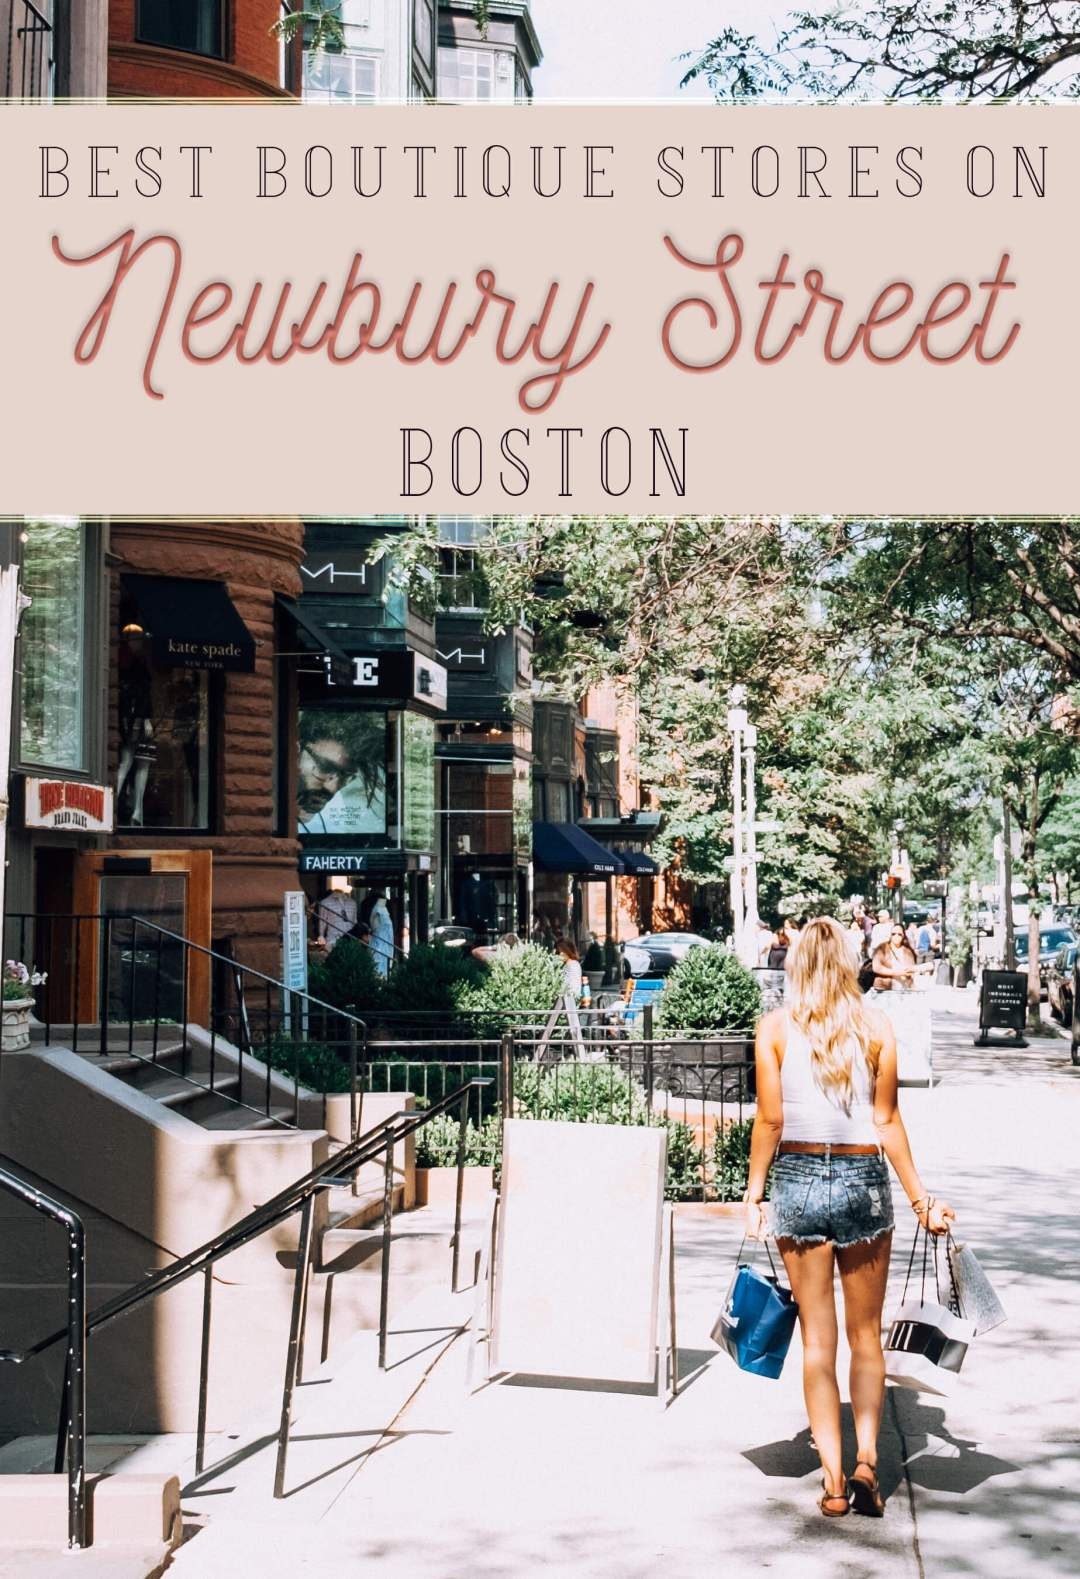 Woman shopping with text Best Boutique stores on Newbury Street Boston